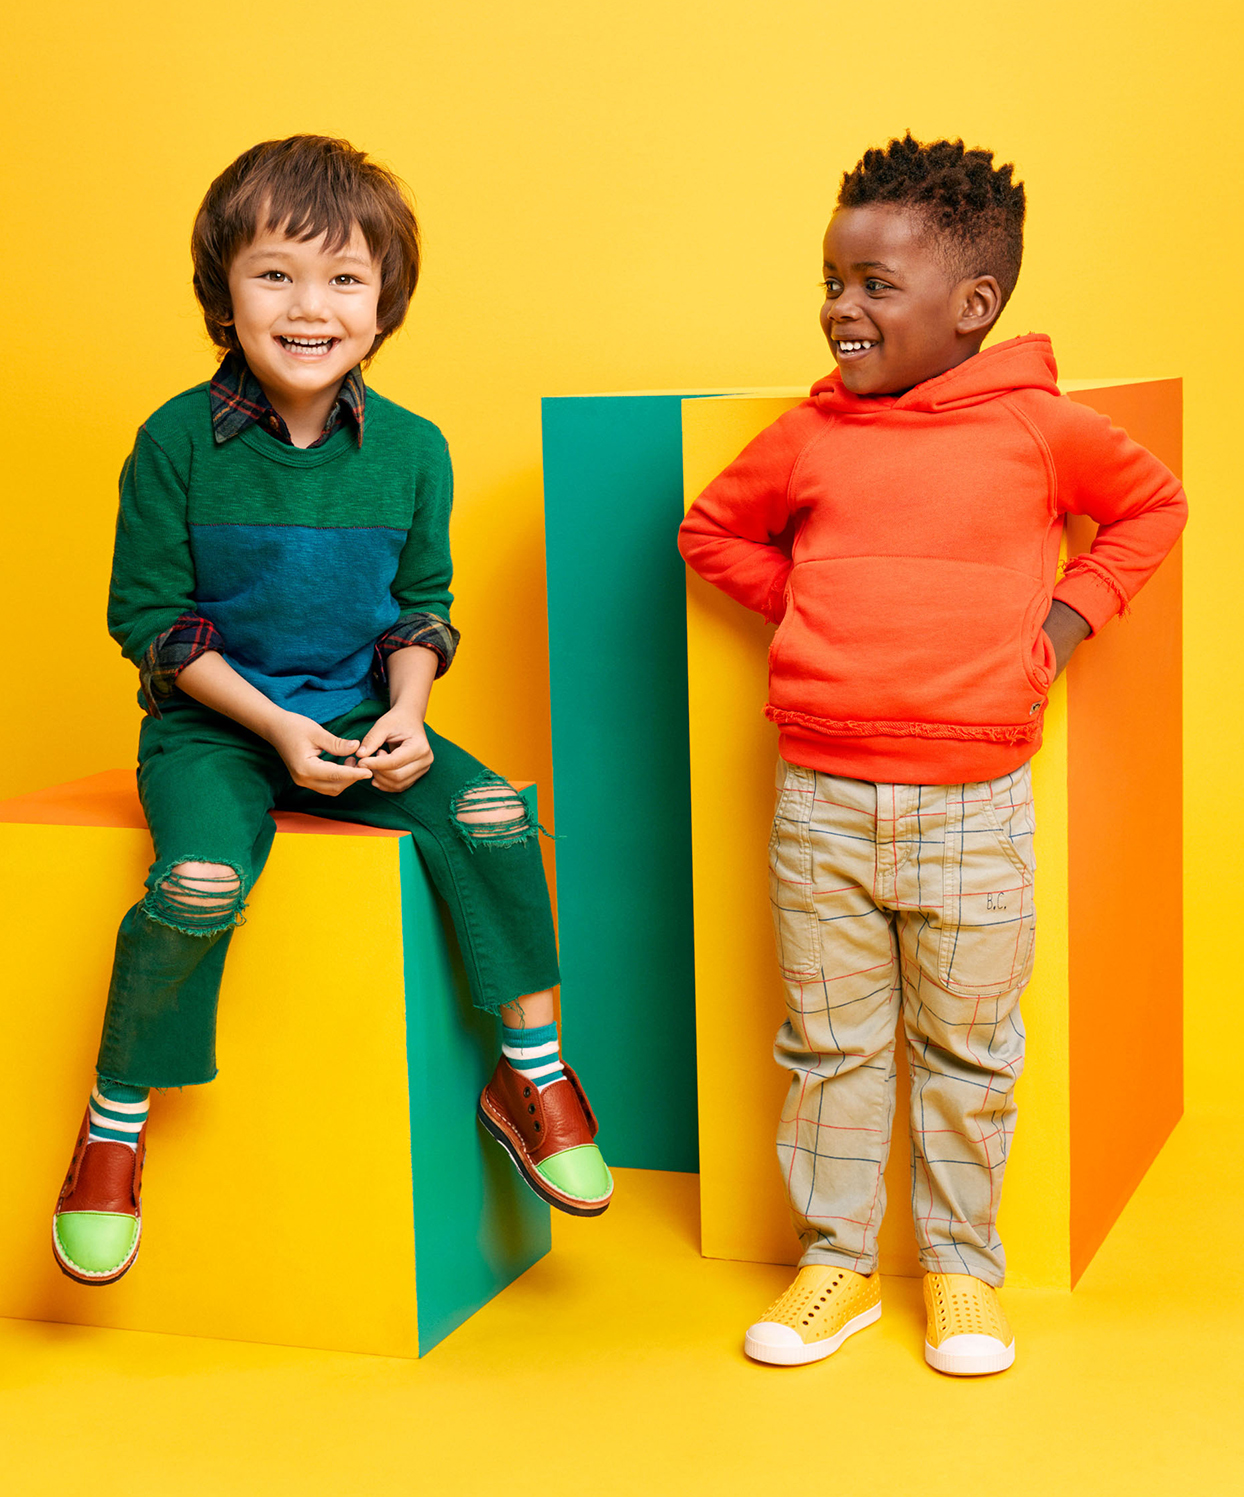 two boys yellow background smiling on blocks